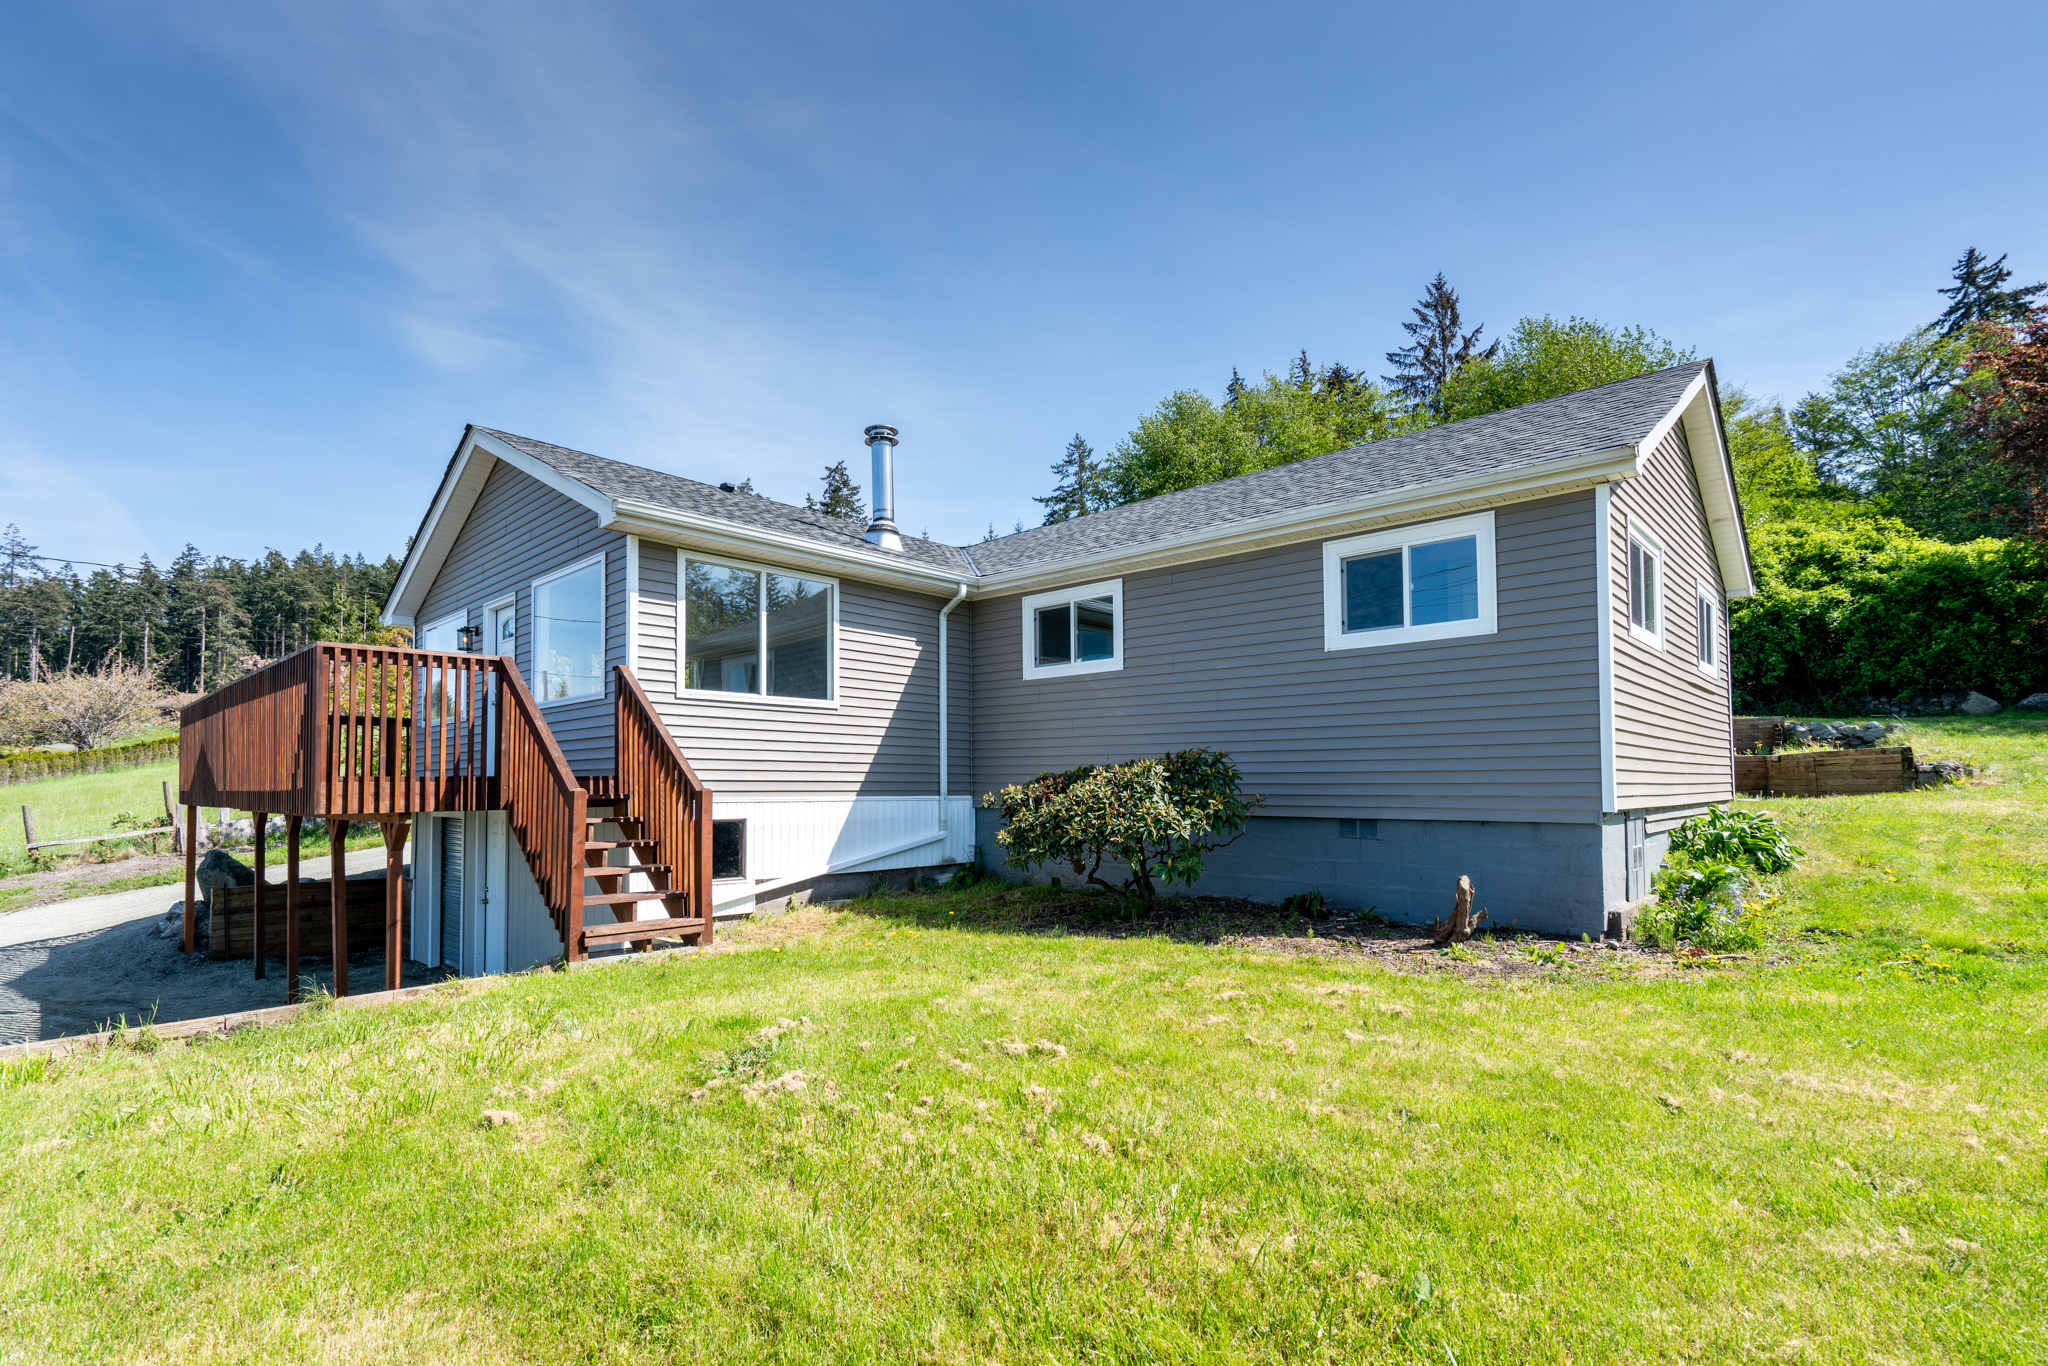 194 E Frostad Rd - Oak Harbor, WA 98277